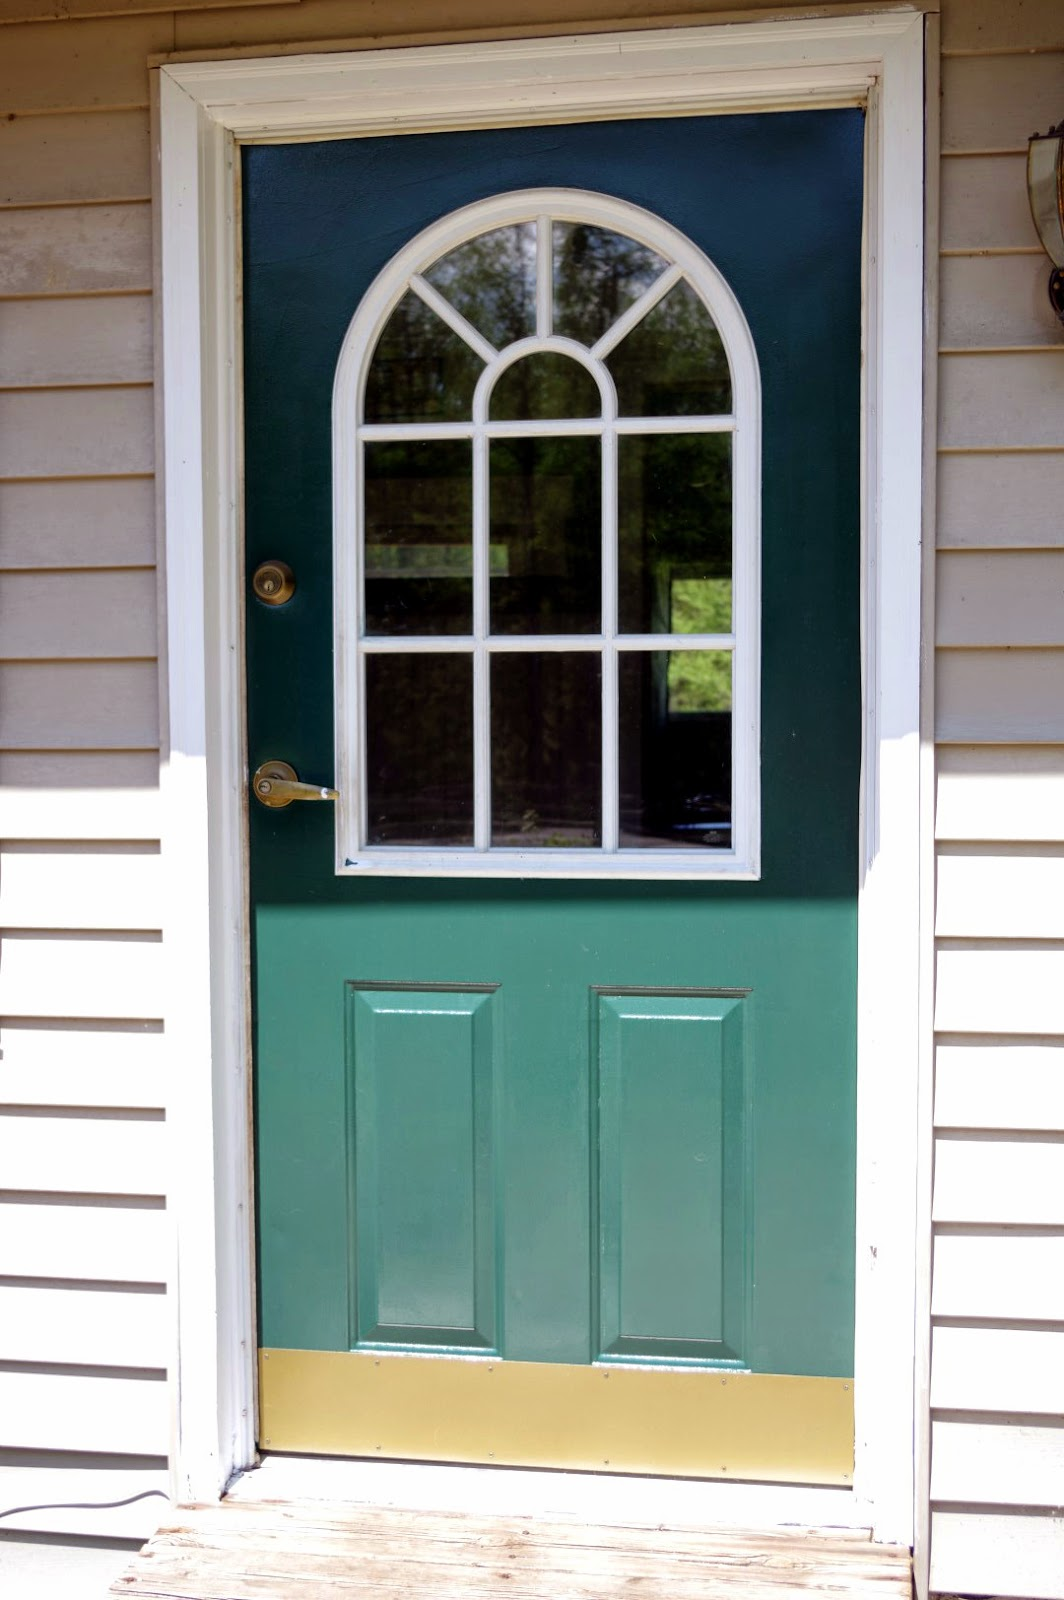 Painting a Door and How to Fix that Kick Plate - Black Spruce Hound